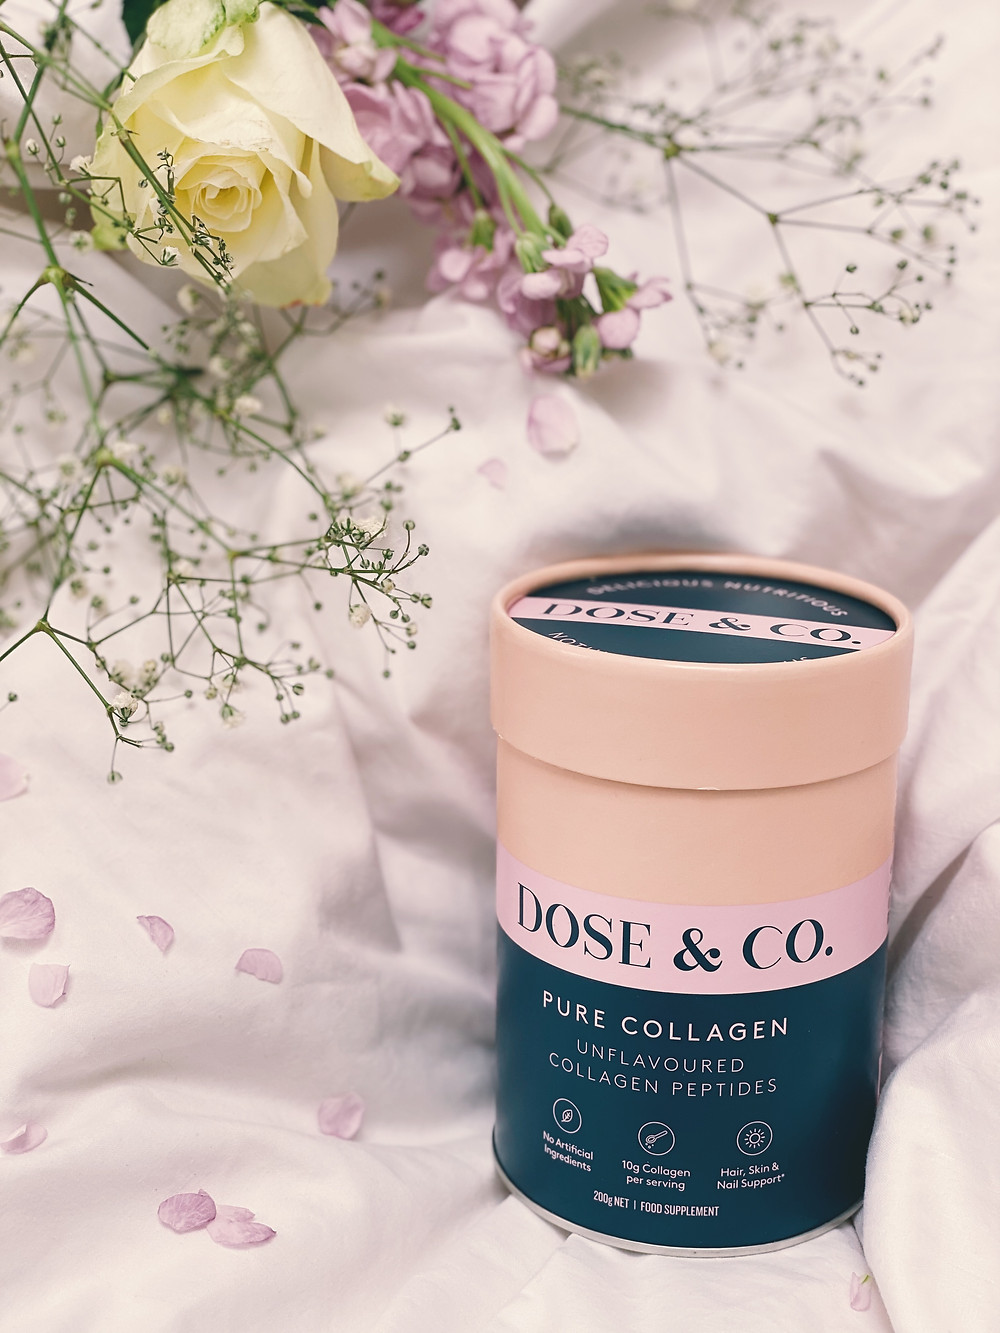 Dose & Co Pure Collagen Unflavoured